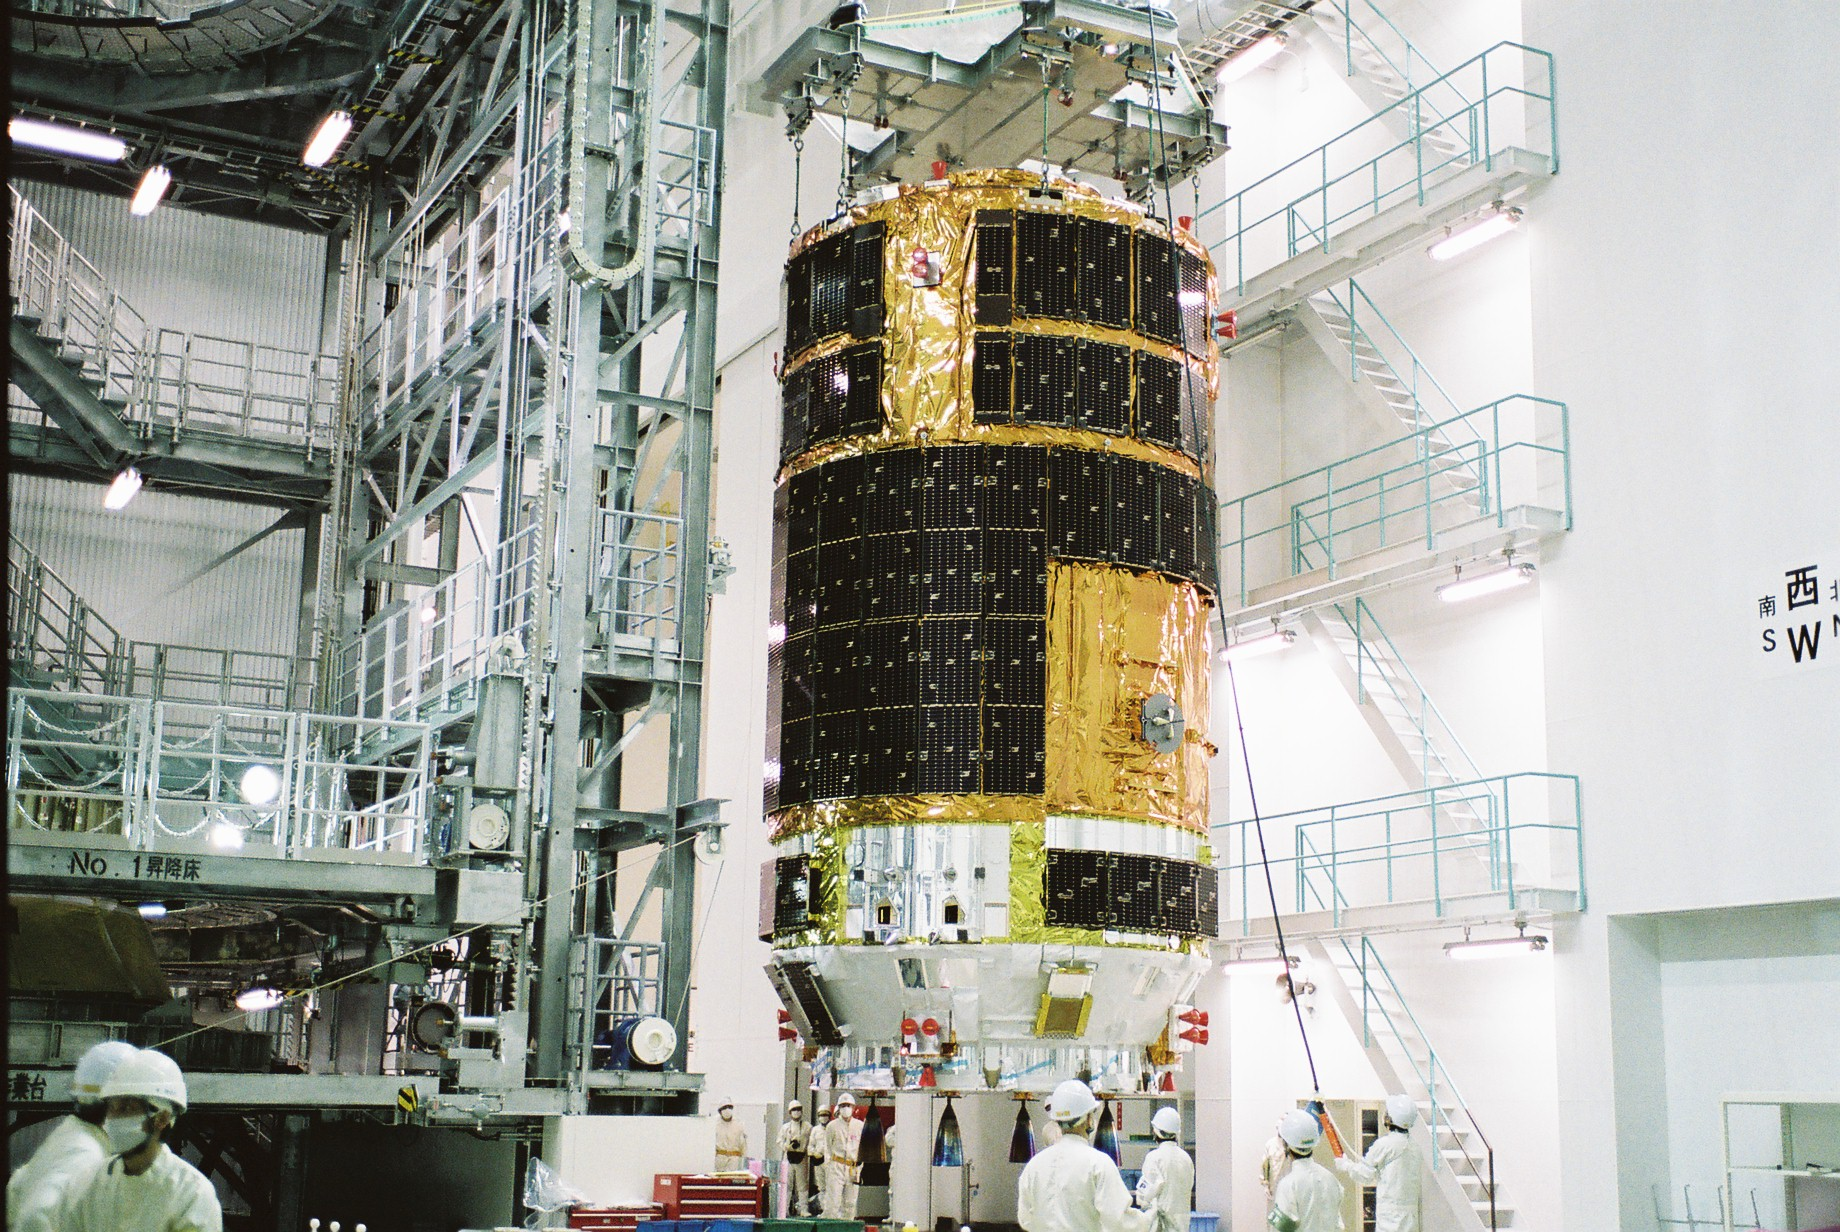 Japanese technicians prepare the fifth H-2 Transfer Vehicle for launch at the Tanegashima Space Center in Japan. Credit: JAXA